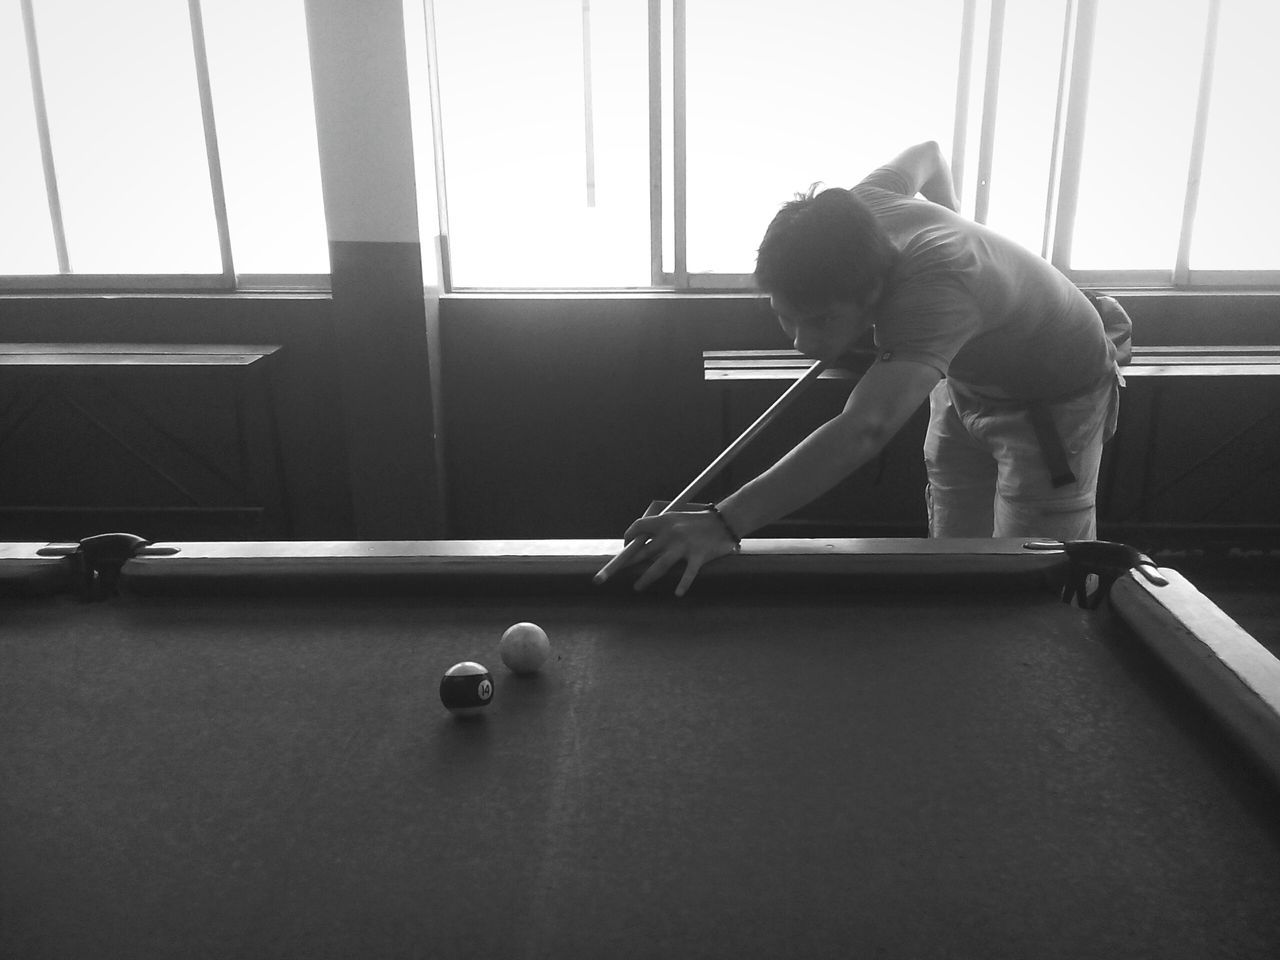 When failing becomes a crime Sport Pool Ball Indoors  Concentration Pool - Cue Sport Leisure Activity Pool Table Window One Person Pool Cue Lifestyles Adults Only People Adult Young Adult Ball Snooker Pool Hall Lomo Blackandwhite Photography Blackandwhite Monochrome Photography Real People Lima The Week On Eyem